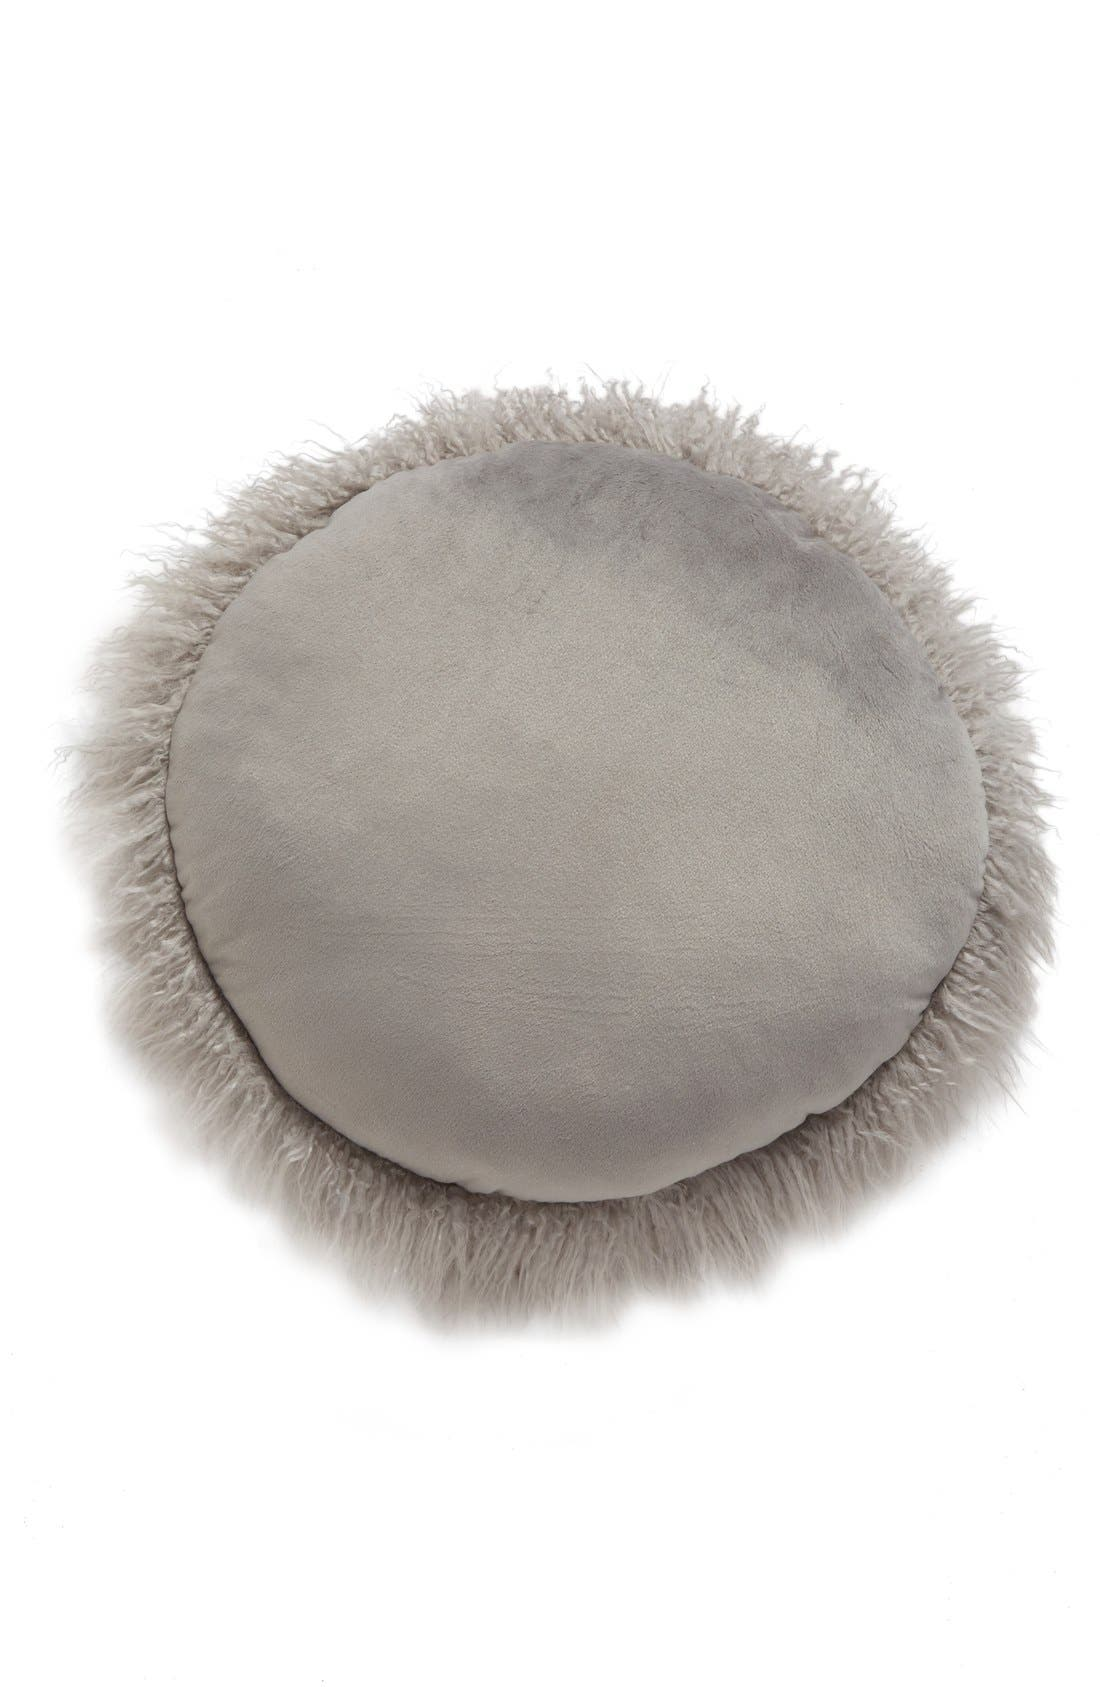 Faux Fur Accent Pillow,                             Alternate thumbnail 2, color,                             020